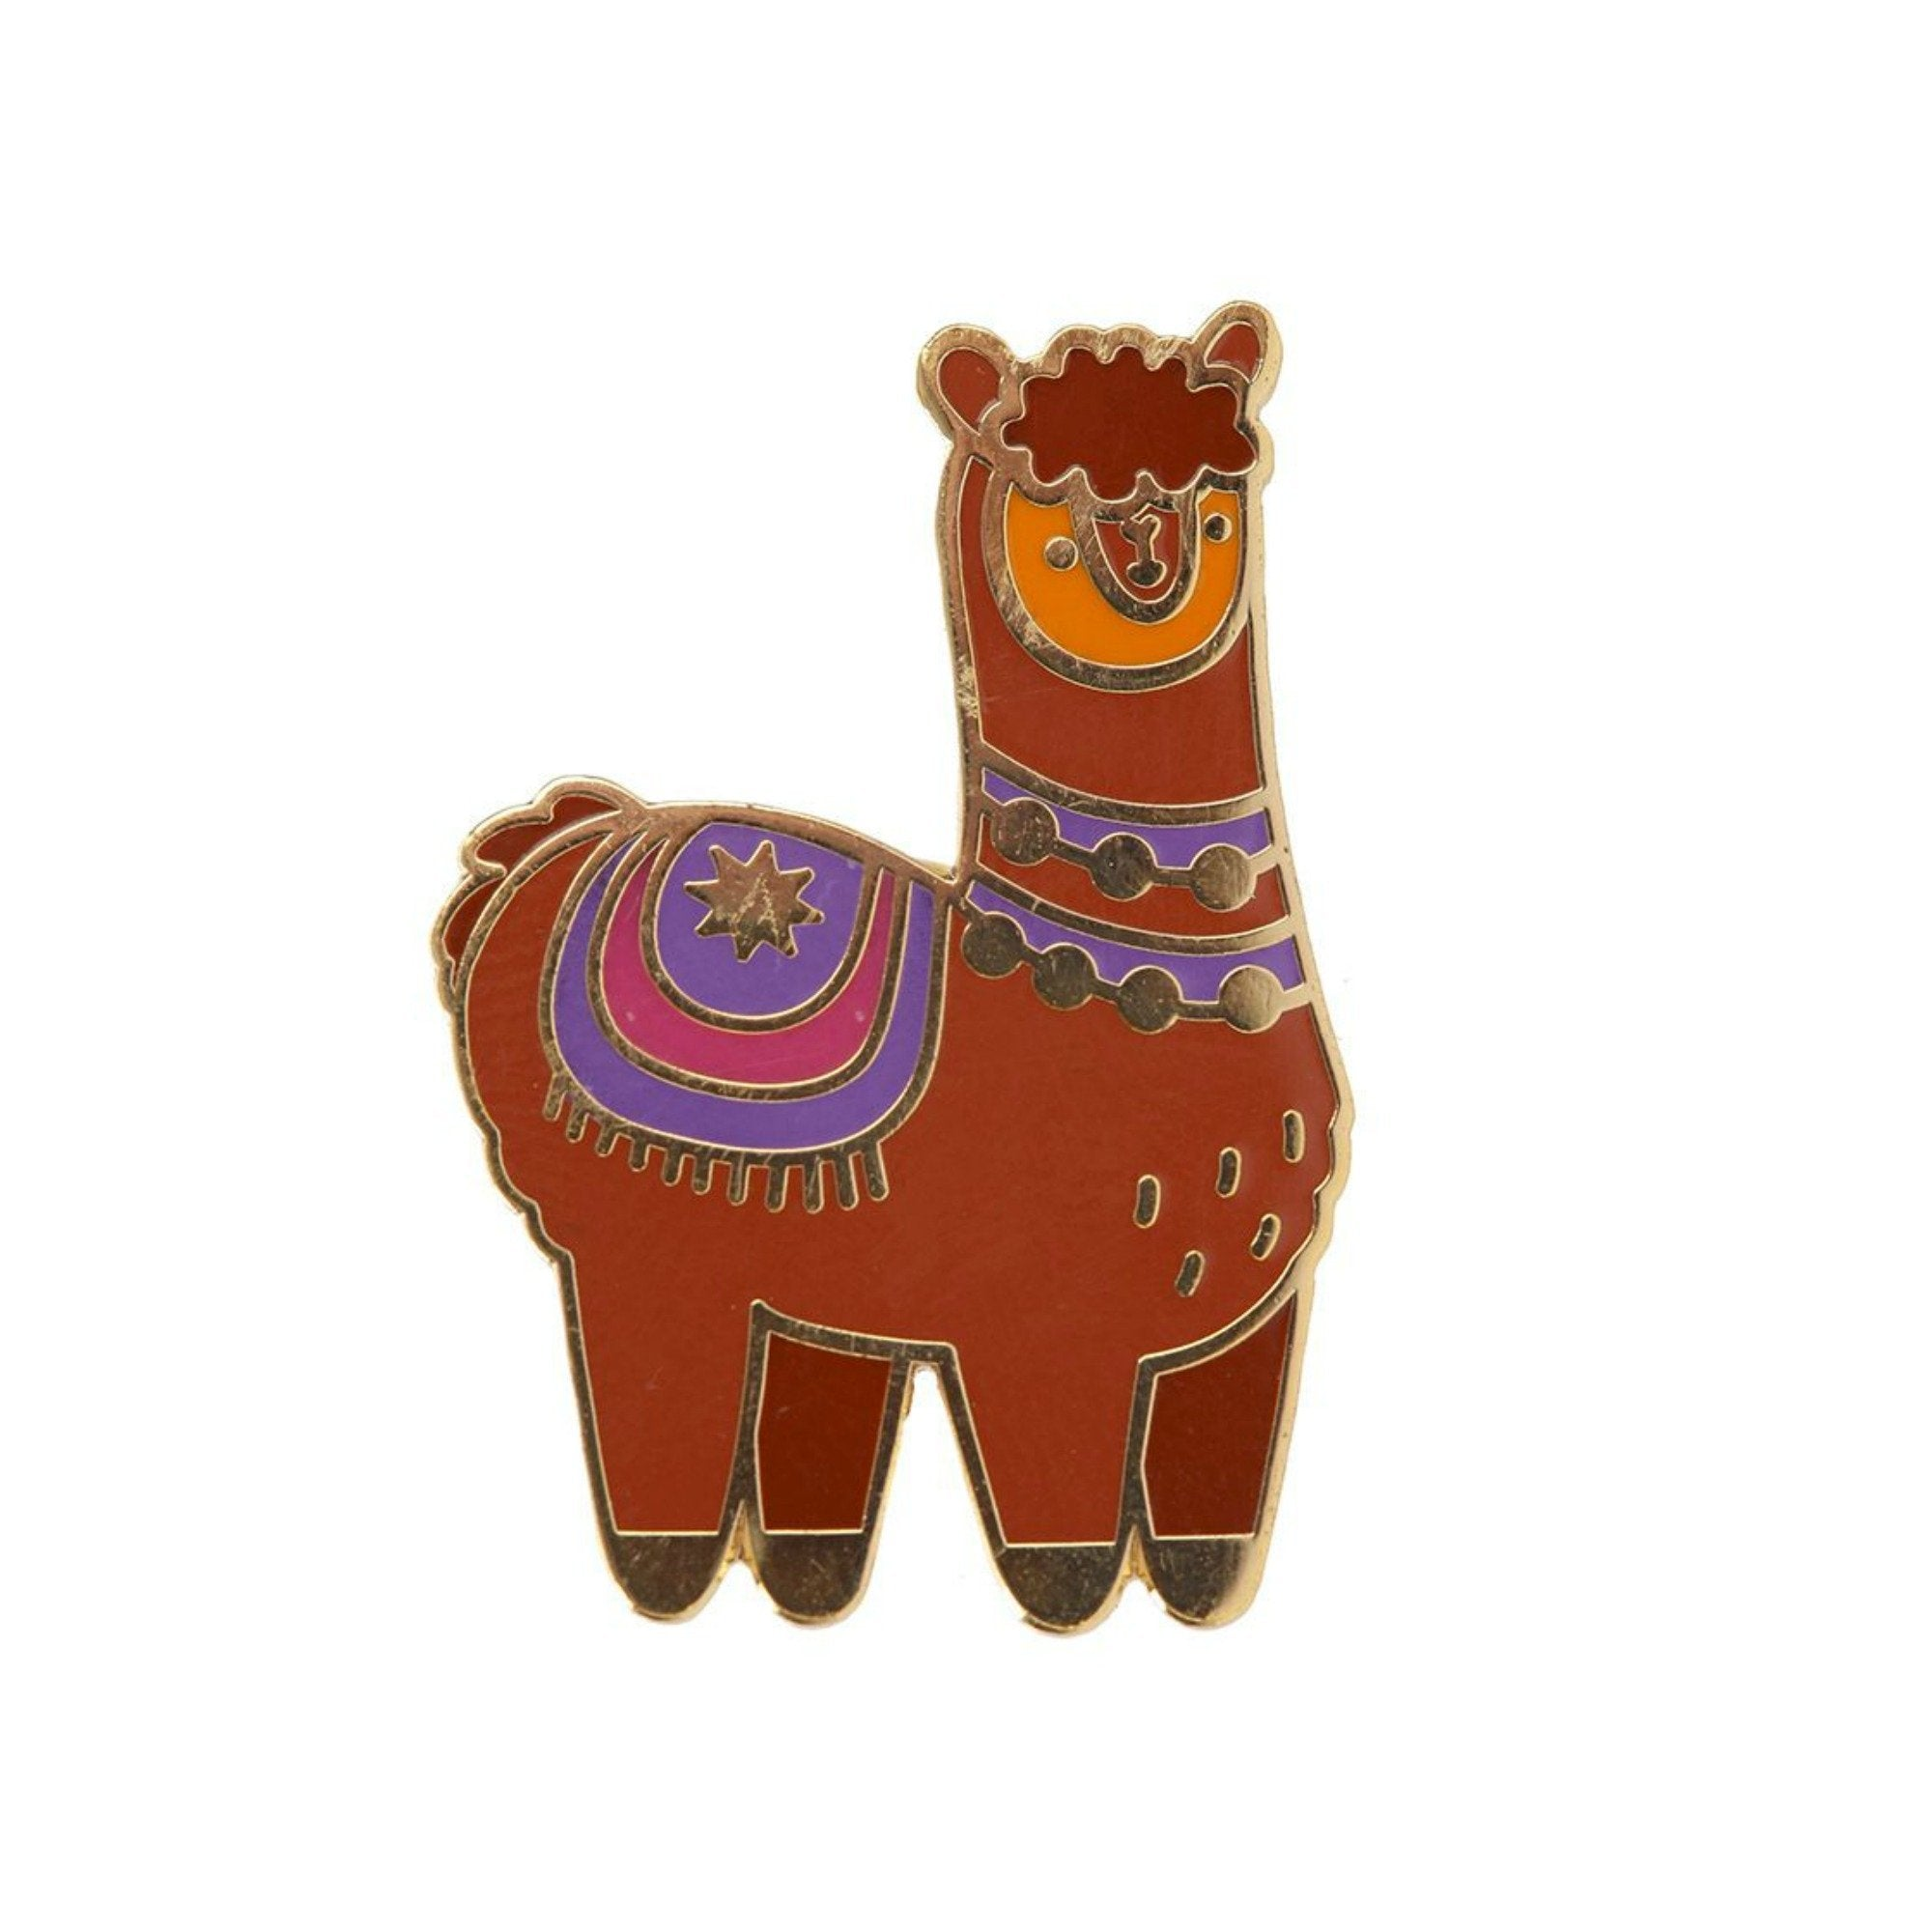 Cute Alpaca Llama Enamel Lapel Pin Badge - Minimum Mouse